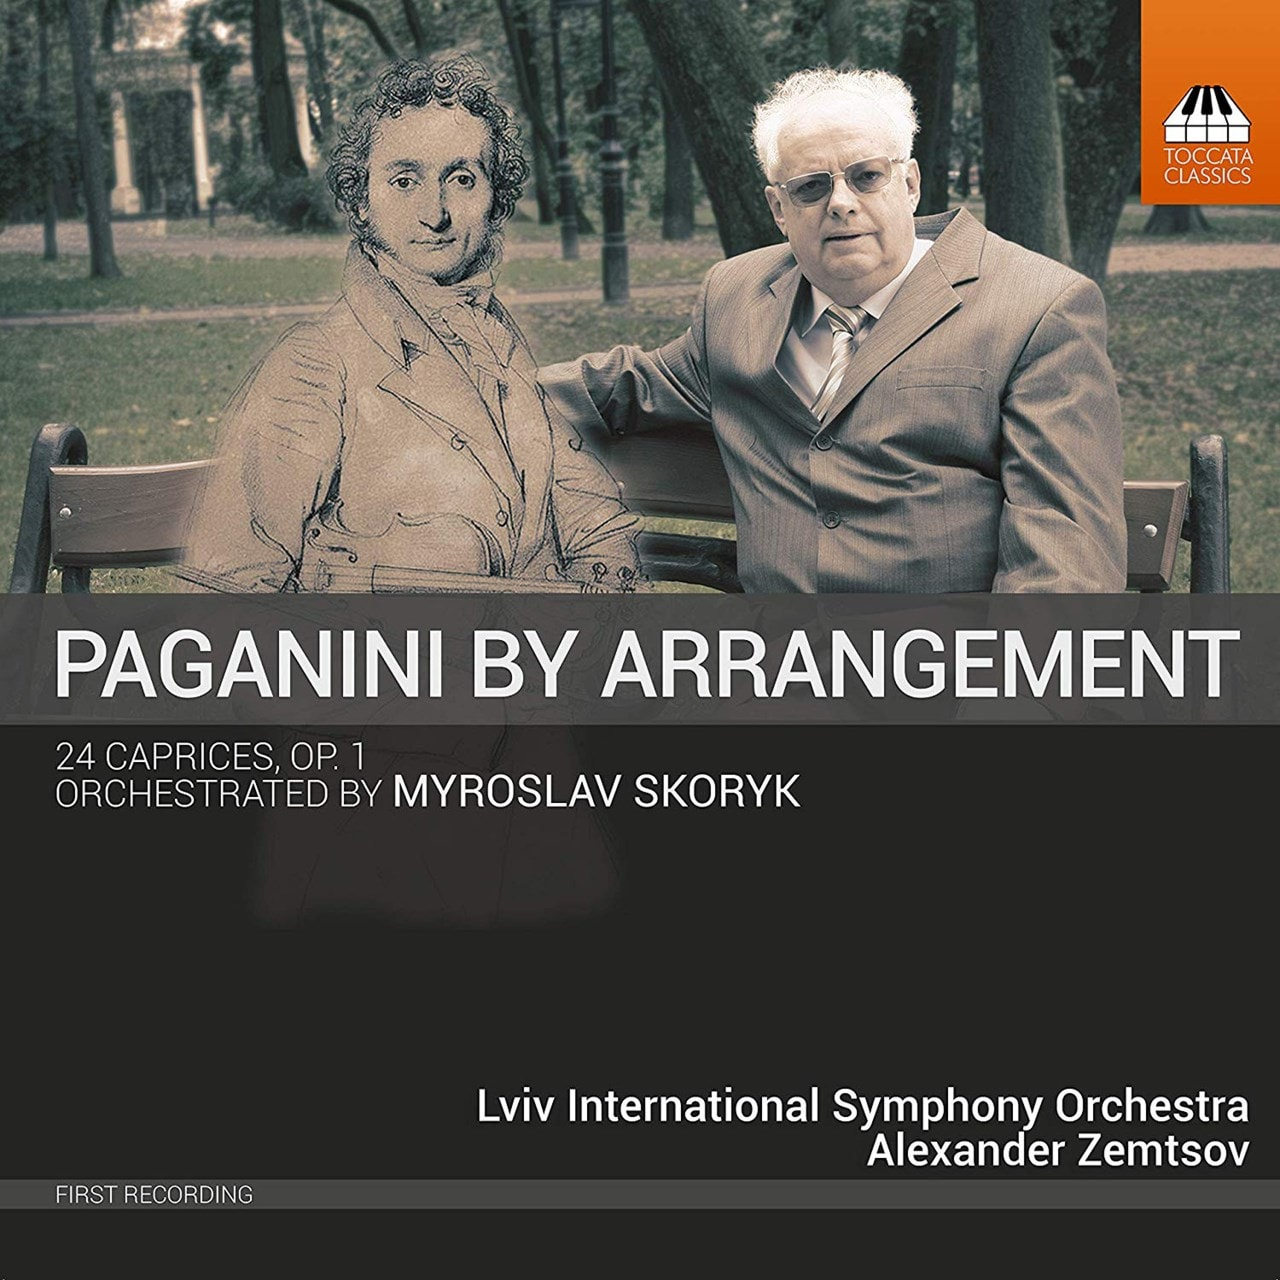 Paganini By Arrangement: 24 Caprices, Op. 1: Orchestrated By Myroslav Skoryk - 1